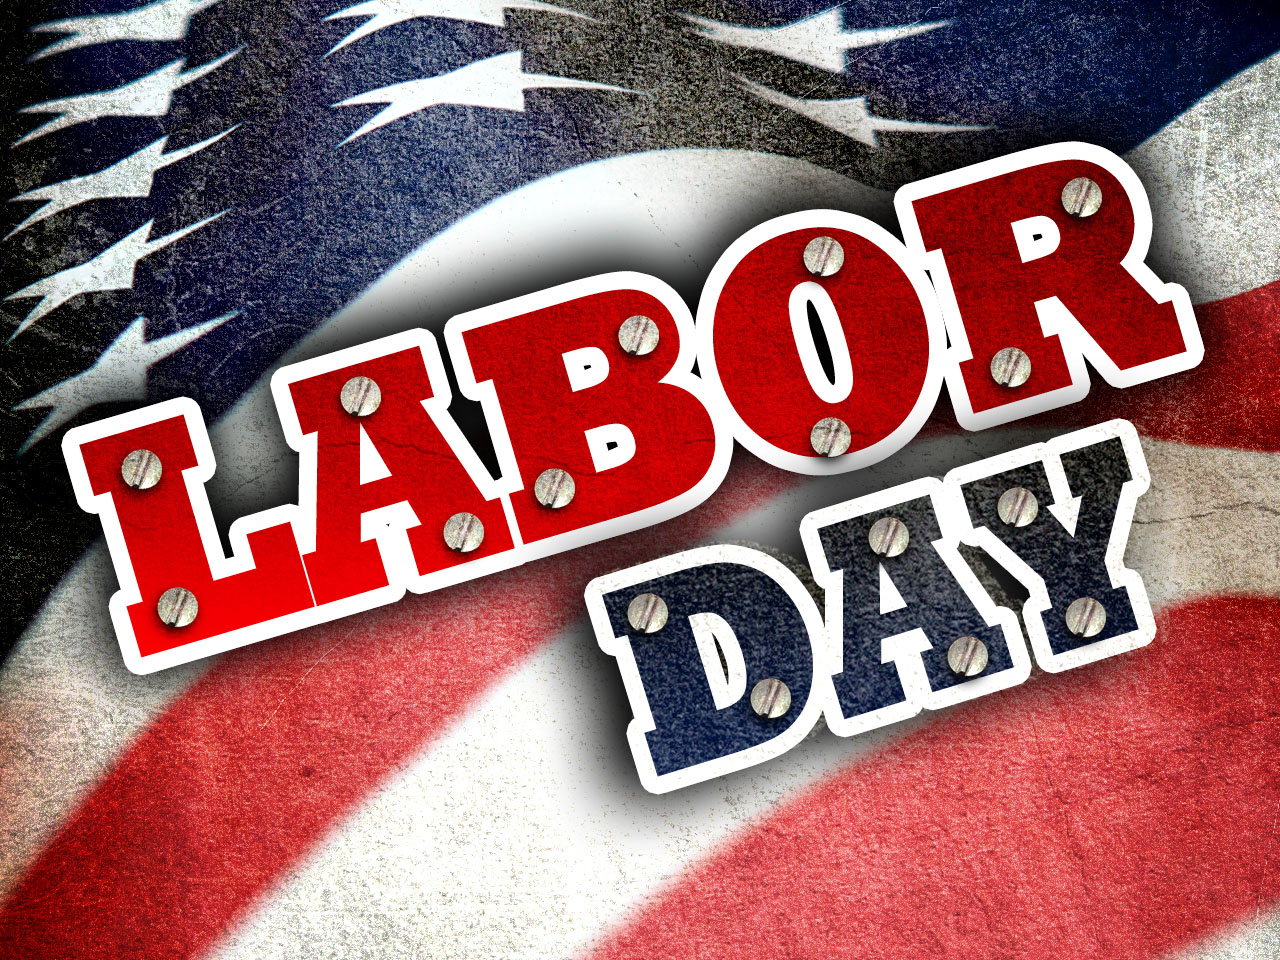 International Workers Day also known as Labour Day or Workers Day in some countries and often referred to as May Day is a celebration of labourers and the working